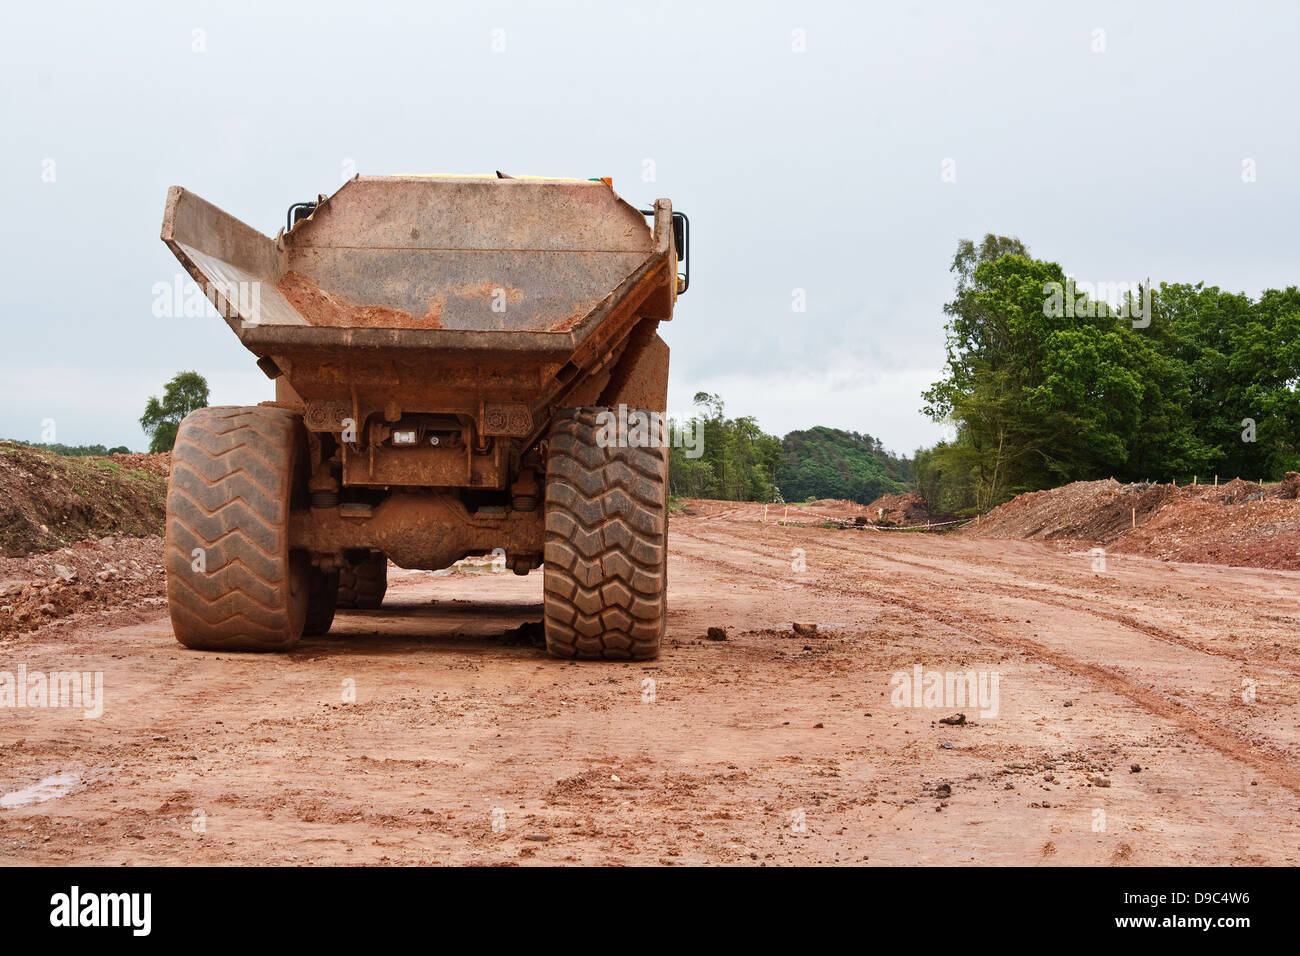 Heavy industrial dumper truck at a new road construction site - Stock Image